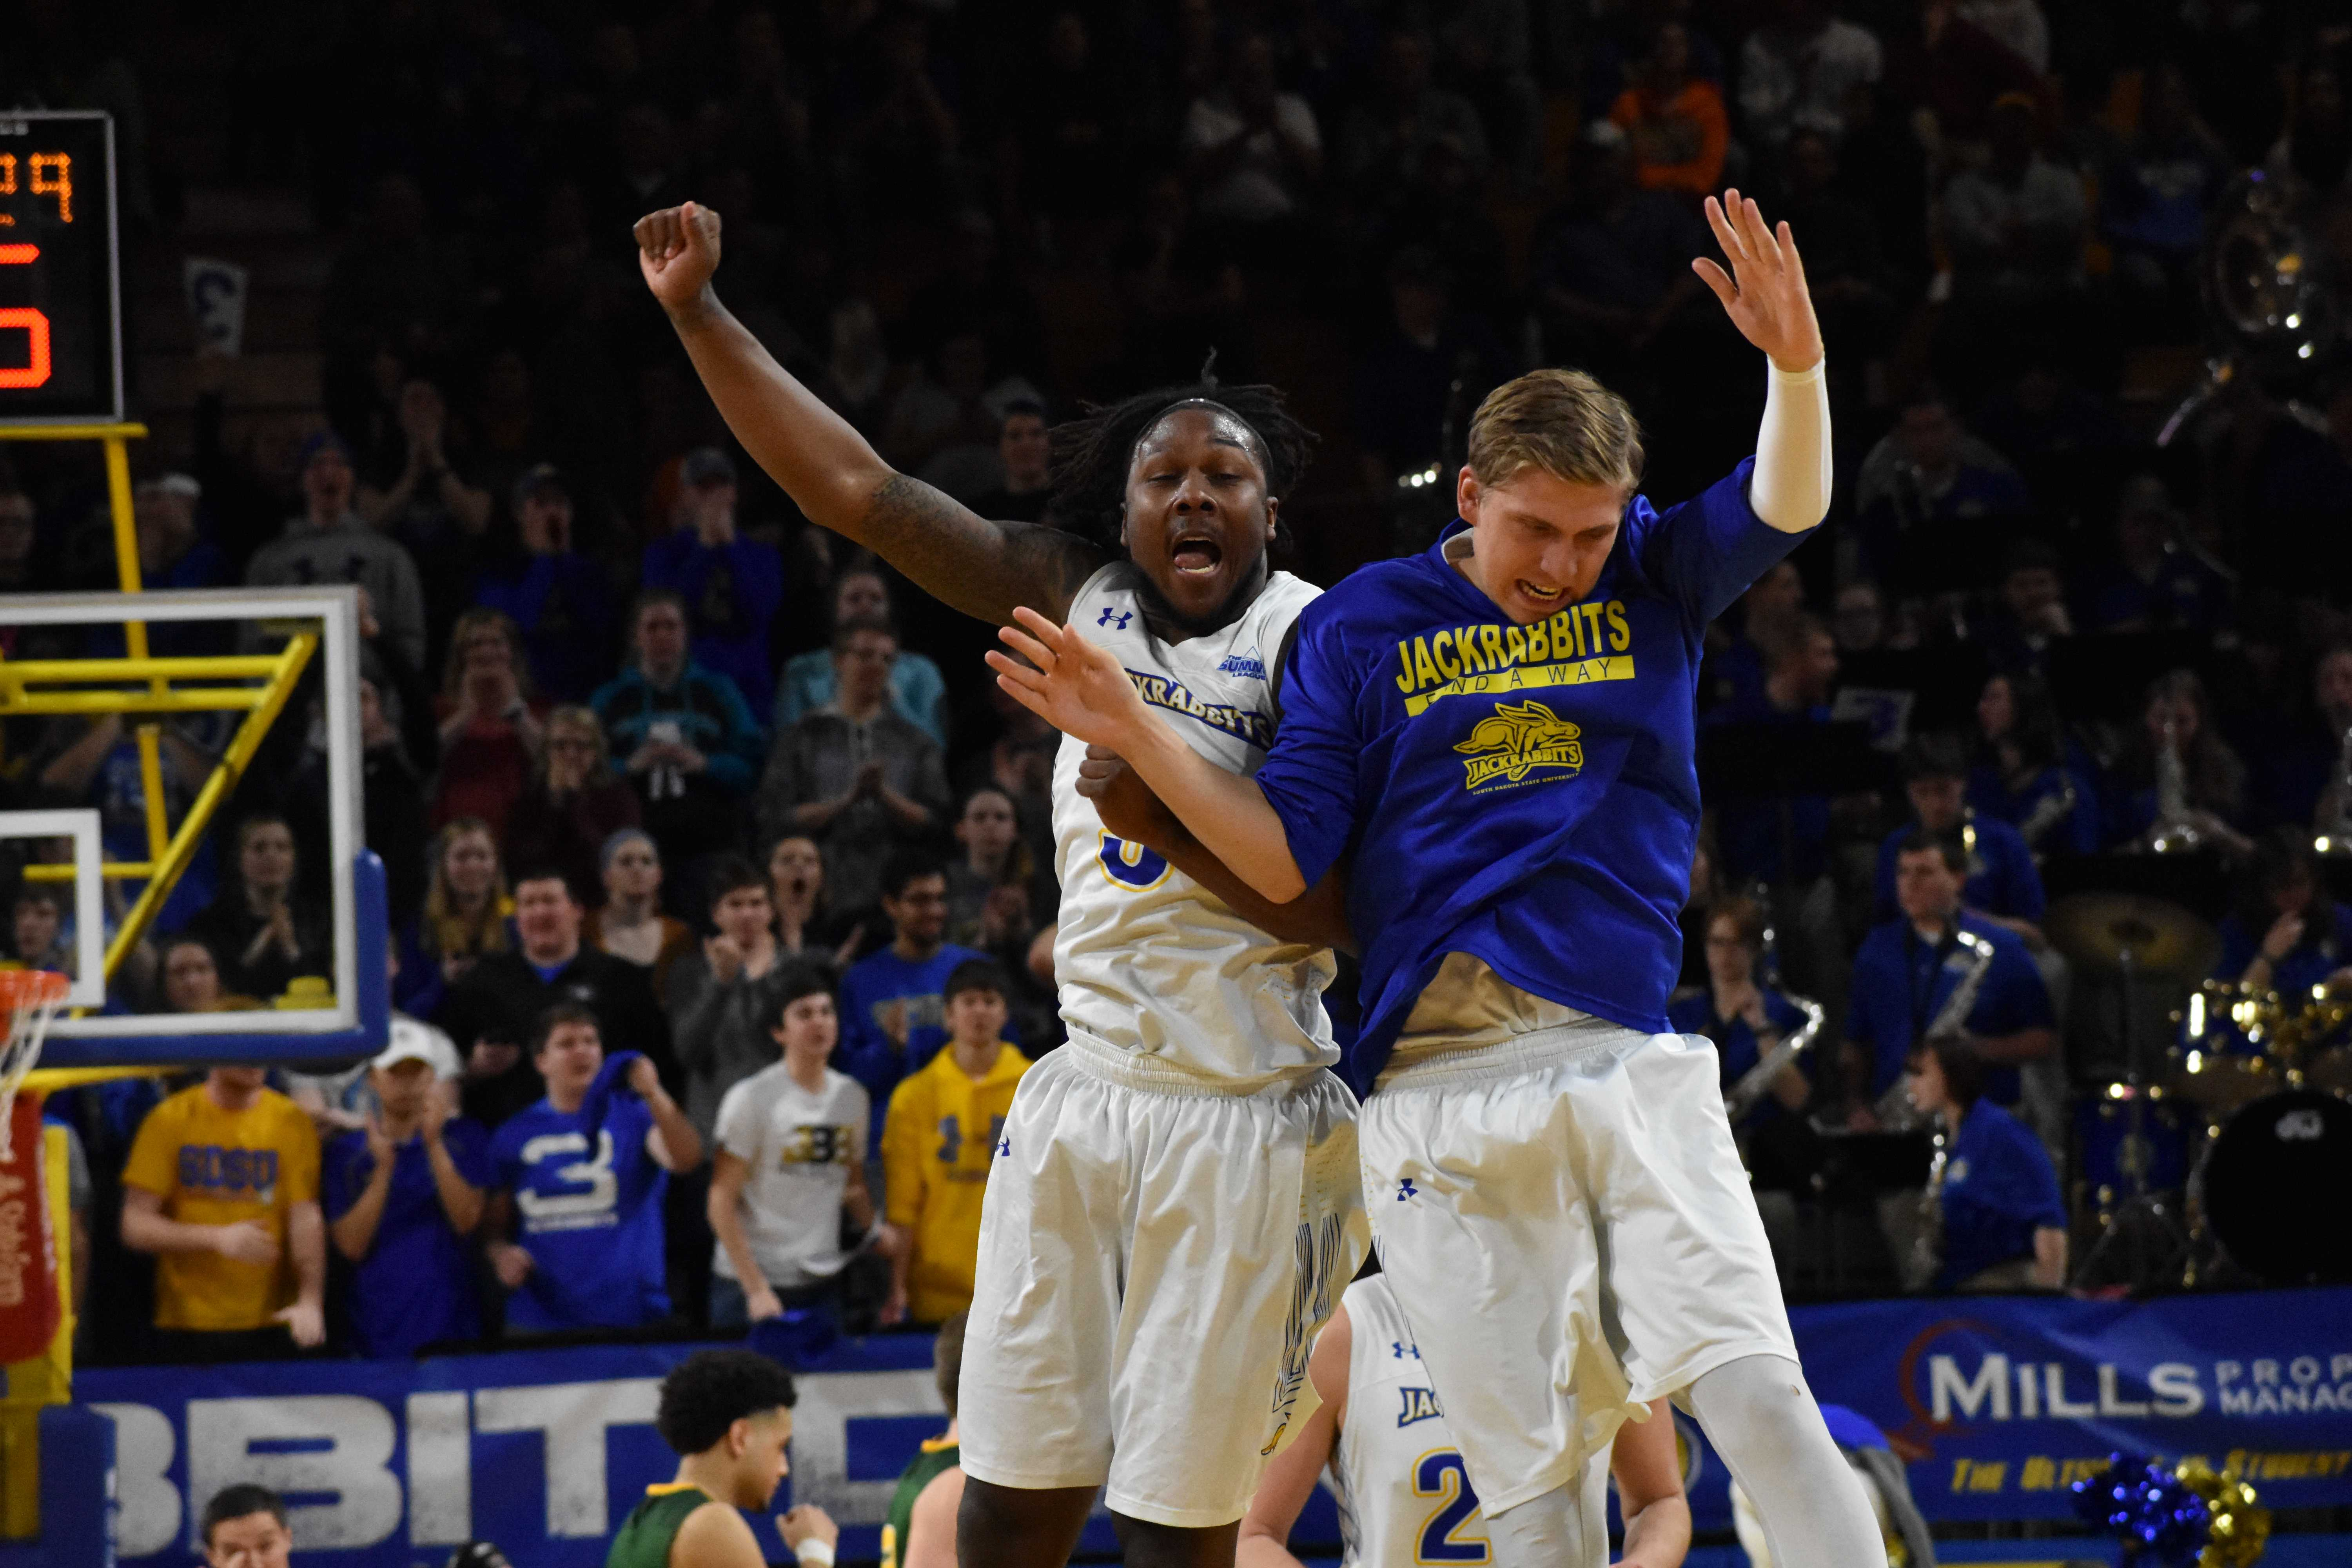 ABBY FULLENKAMP Freshman guard David Jenkins Jr. (5) and sophomore guard Beau Brown (15) celebrate Jenkins' layup before a media timeout during the second half of the game against NDSU Feb. 1. The Jacks beat the Bison 82-63. They host Western Illinois at 2pm Saturday, Feb. 17 in Frost Arena.